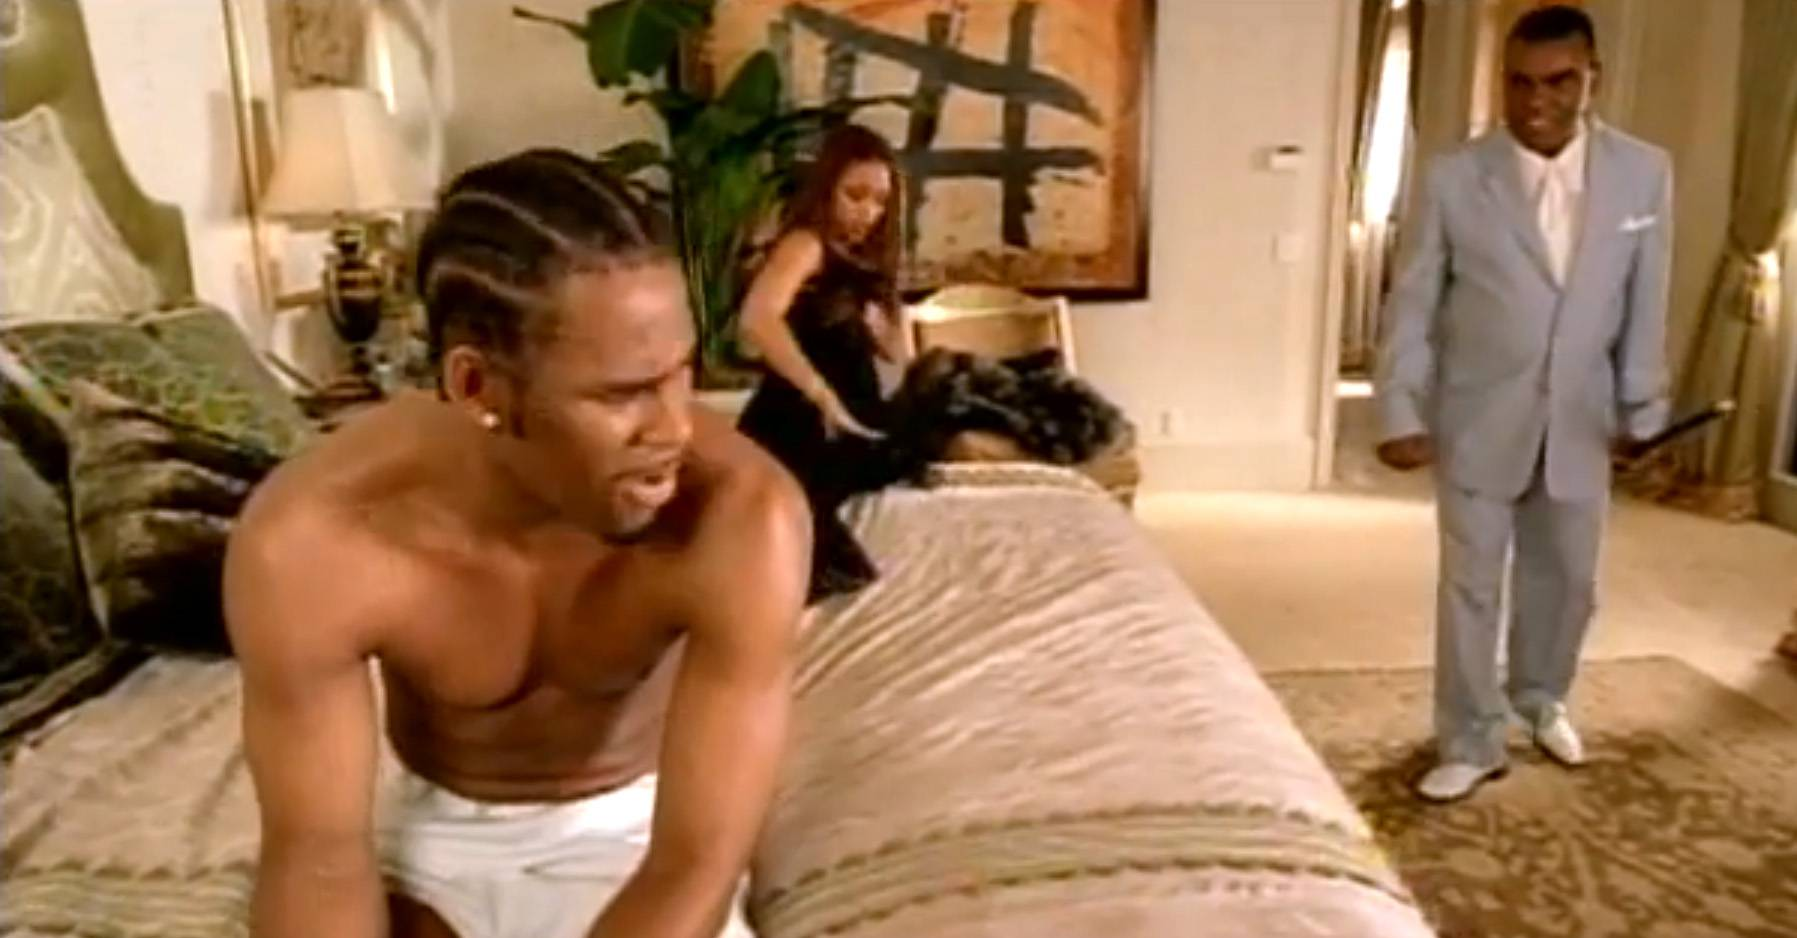 """Ron Isley (Mr. Biggs), R. Kelly and Chante Moore in """"Contagious"""" - In 2001, Ron Isley made a comeback and recruited none other than R. Kelly and Chante Moore to appear alongside him on this sordid song about discovering your spouse's infidelities. The part where Isley (who is referred to by his alias, Mr. Biggs) discovers his wife cheating ranks as one of the greatest moments in R&B history. Even better, the video and lyrics refer to Ron Isley and R. Kelly's previous collaborations, """"Down Low"""" and """"Friend of Mine"""" (remix).   (Photo: SKG Music LLC)"""